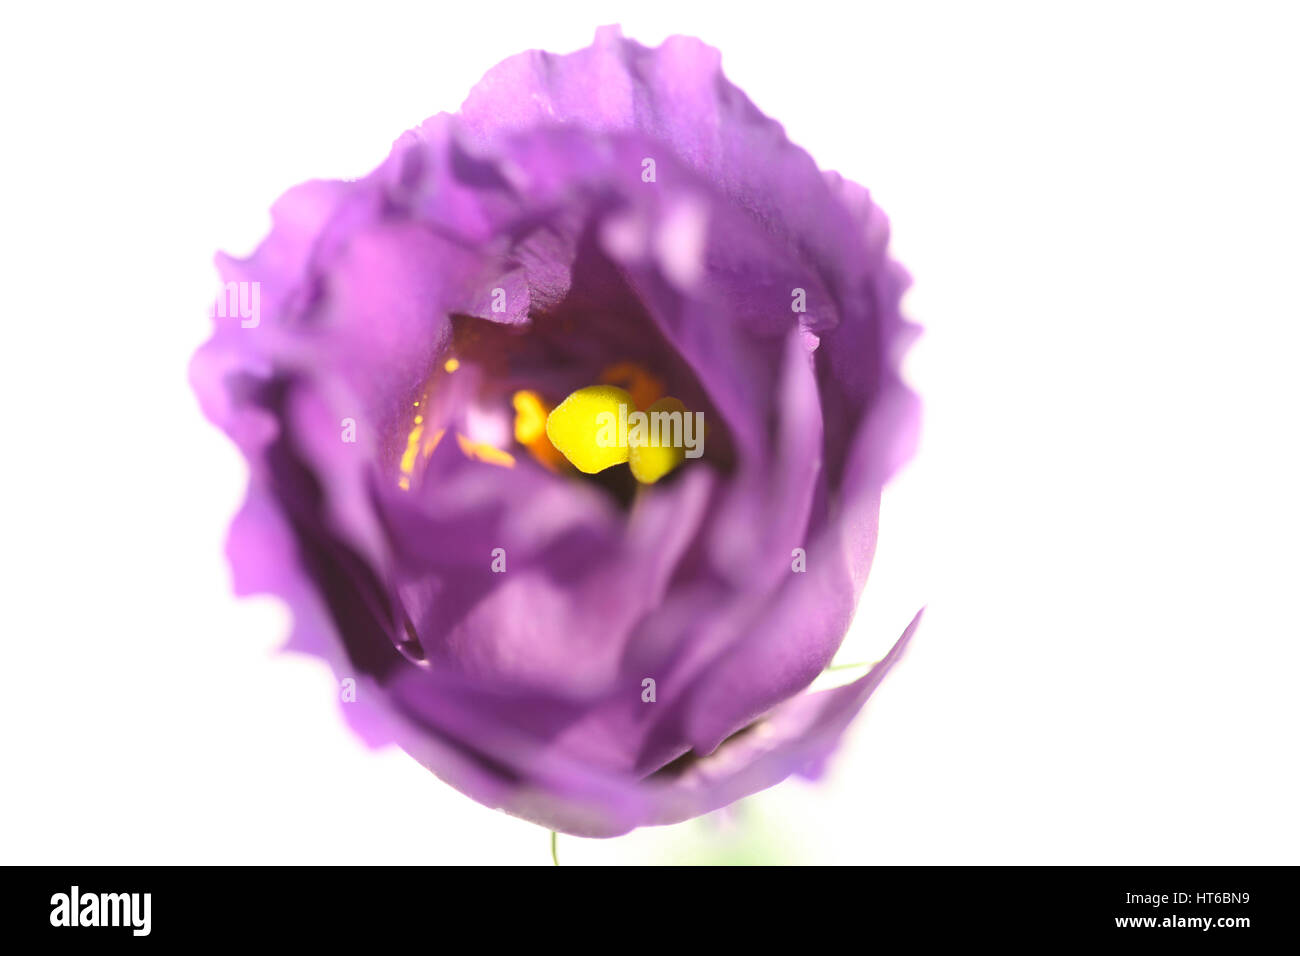 powerful lisianthus flower - concept protect Jane Ann Butler Photography  JABP1873 - Stock Image